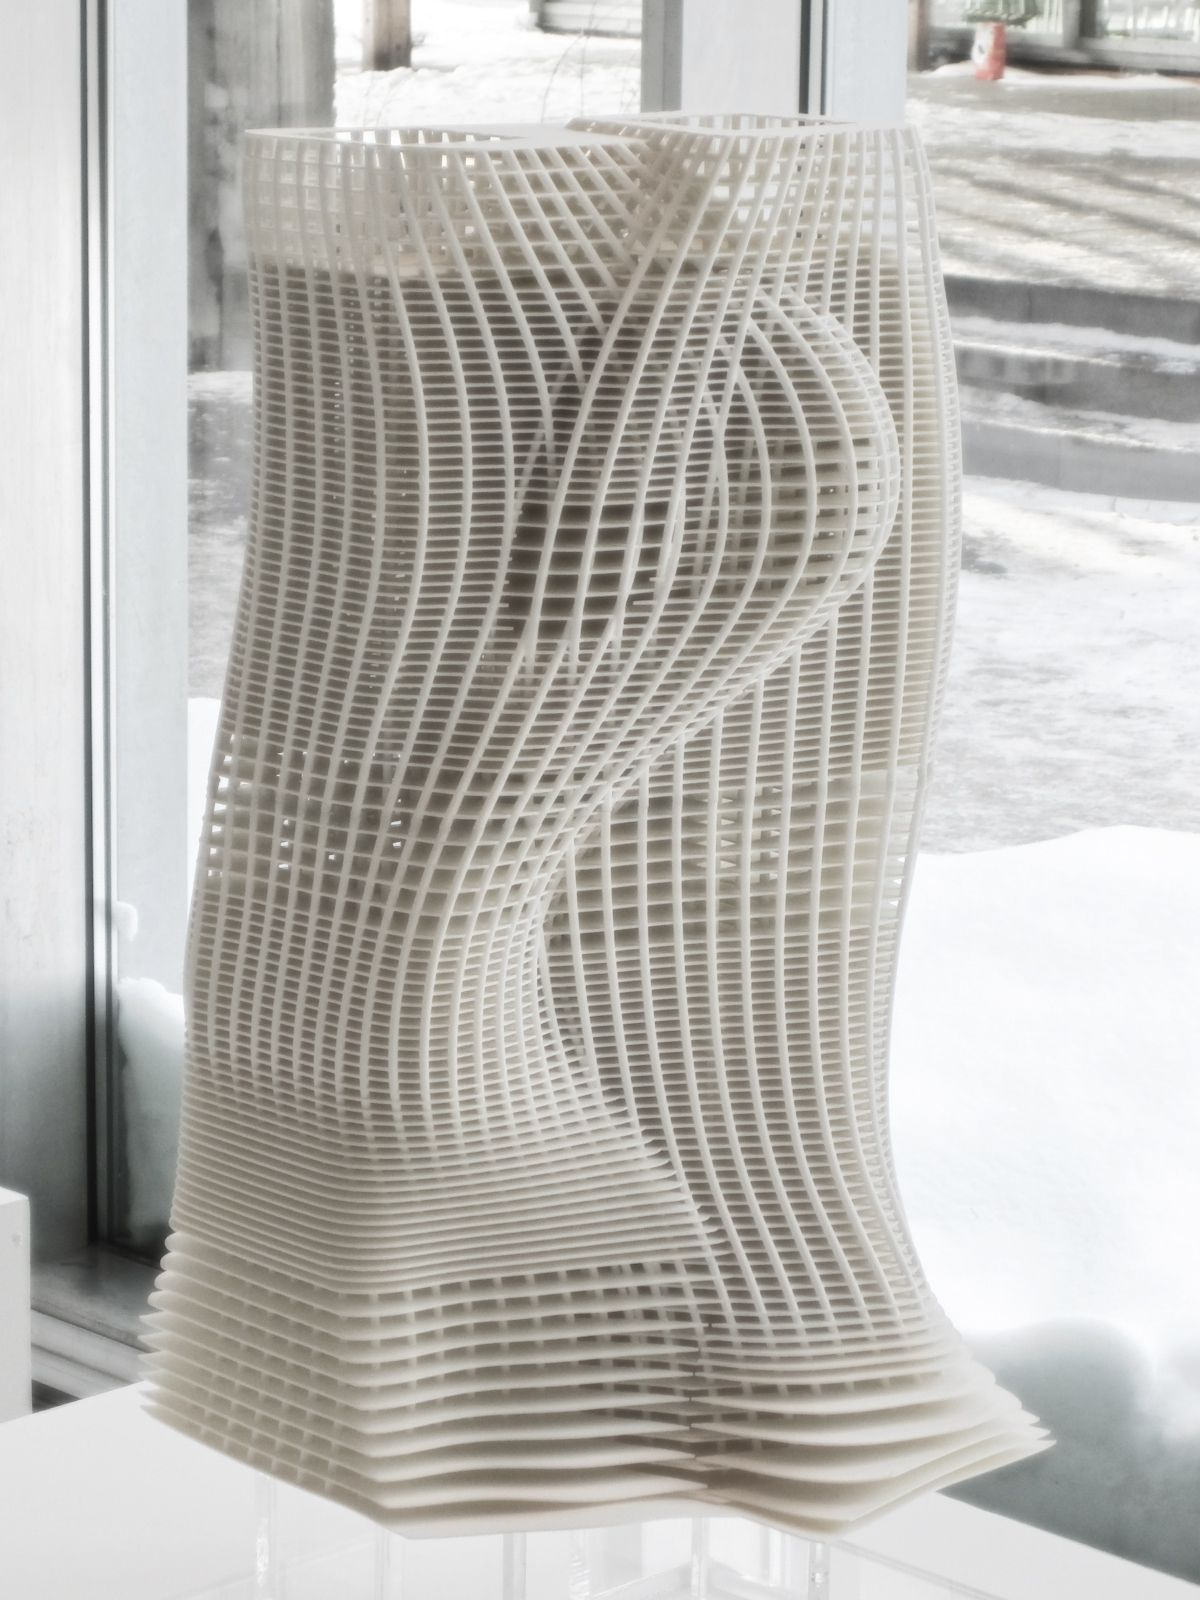 Processingmatter World Centre For Human Concerns 3d Print By Ocean Design Research Association